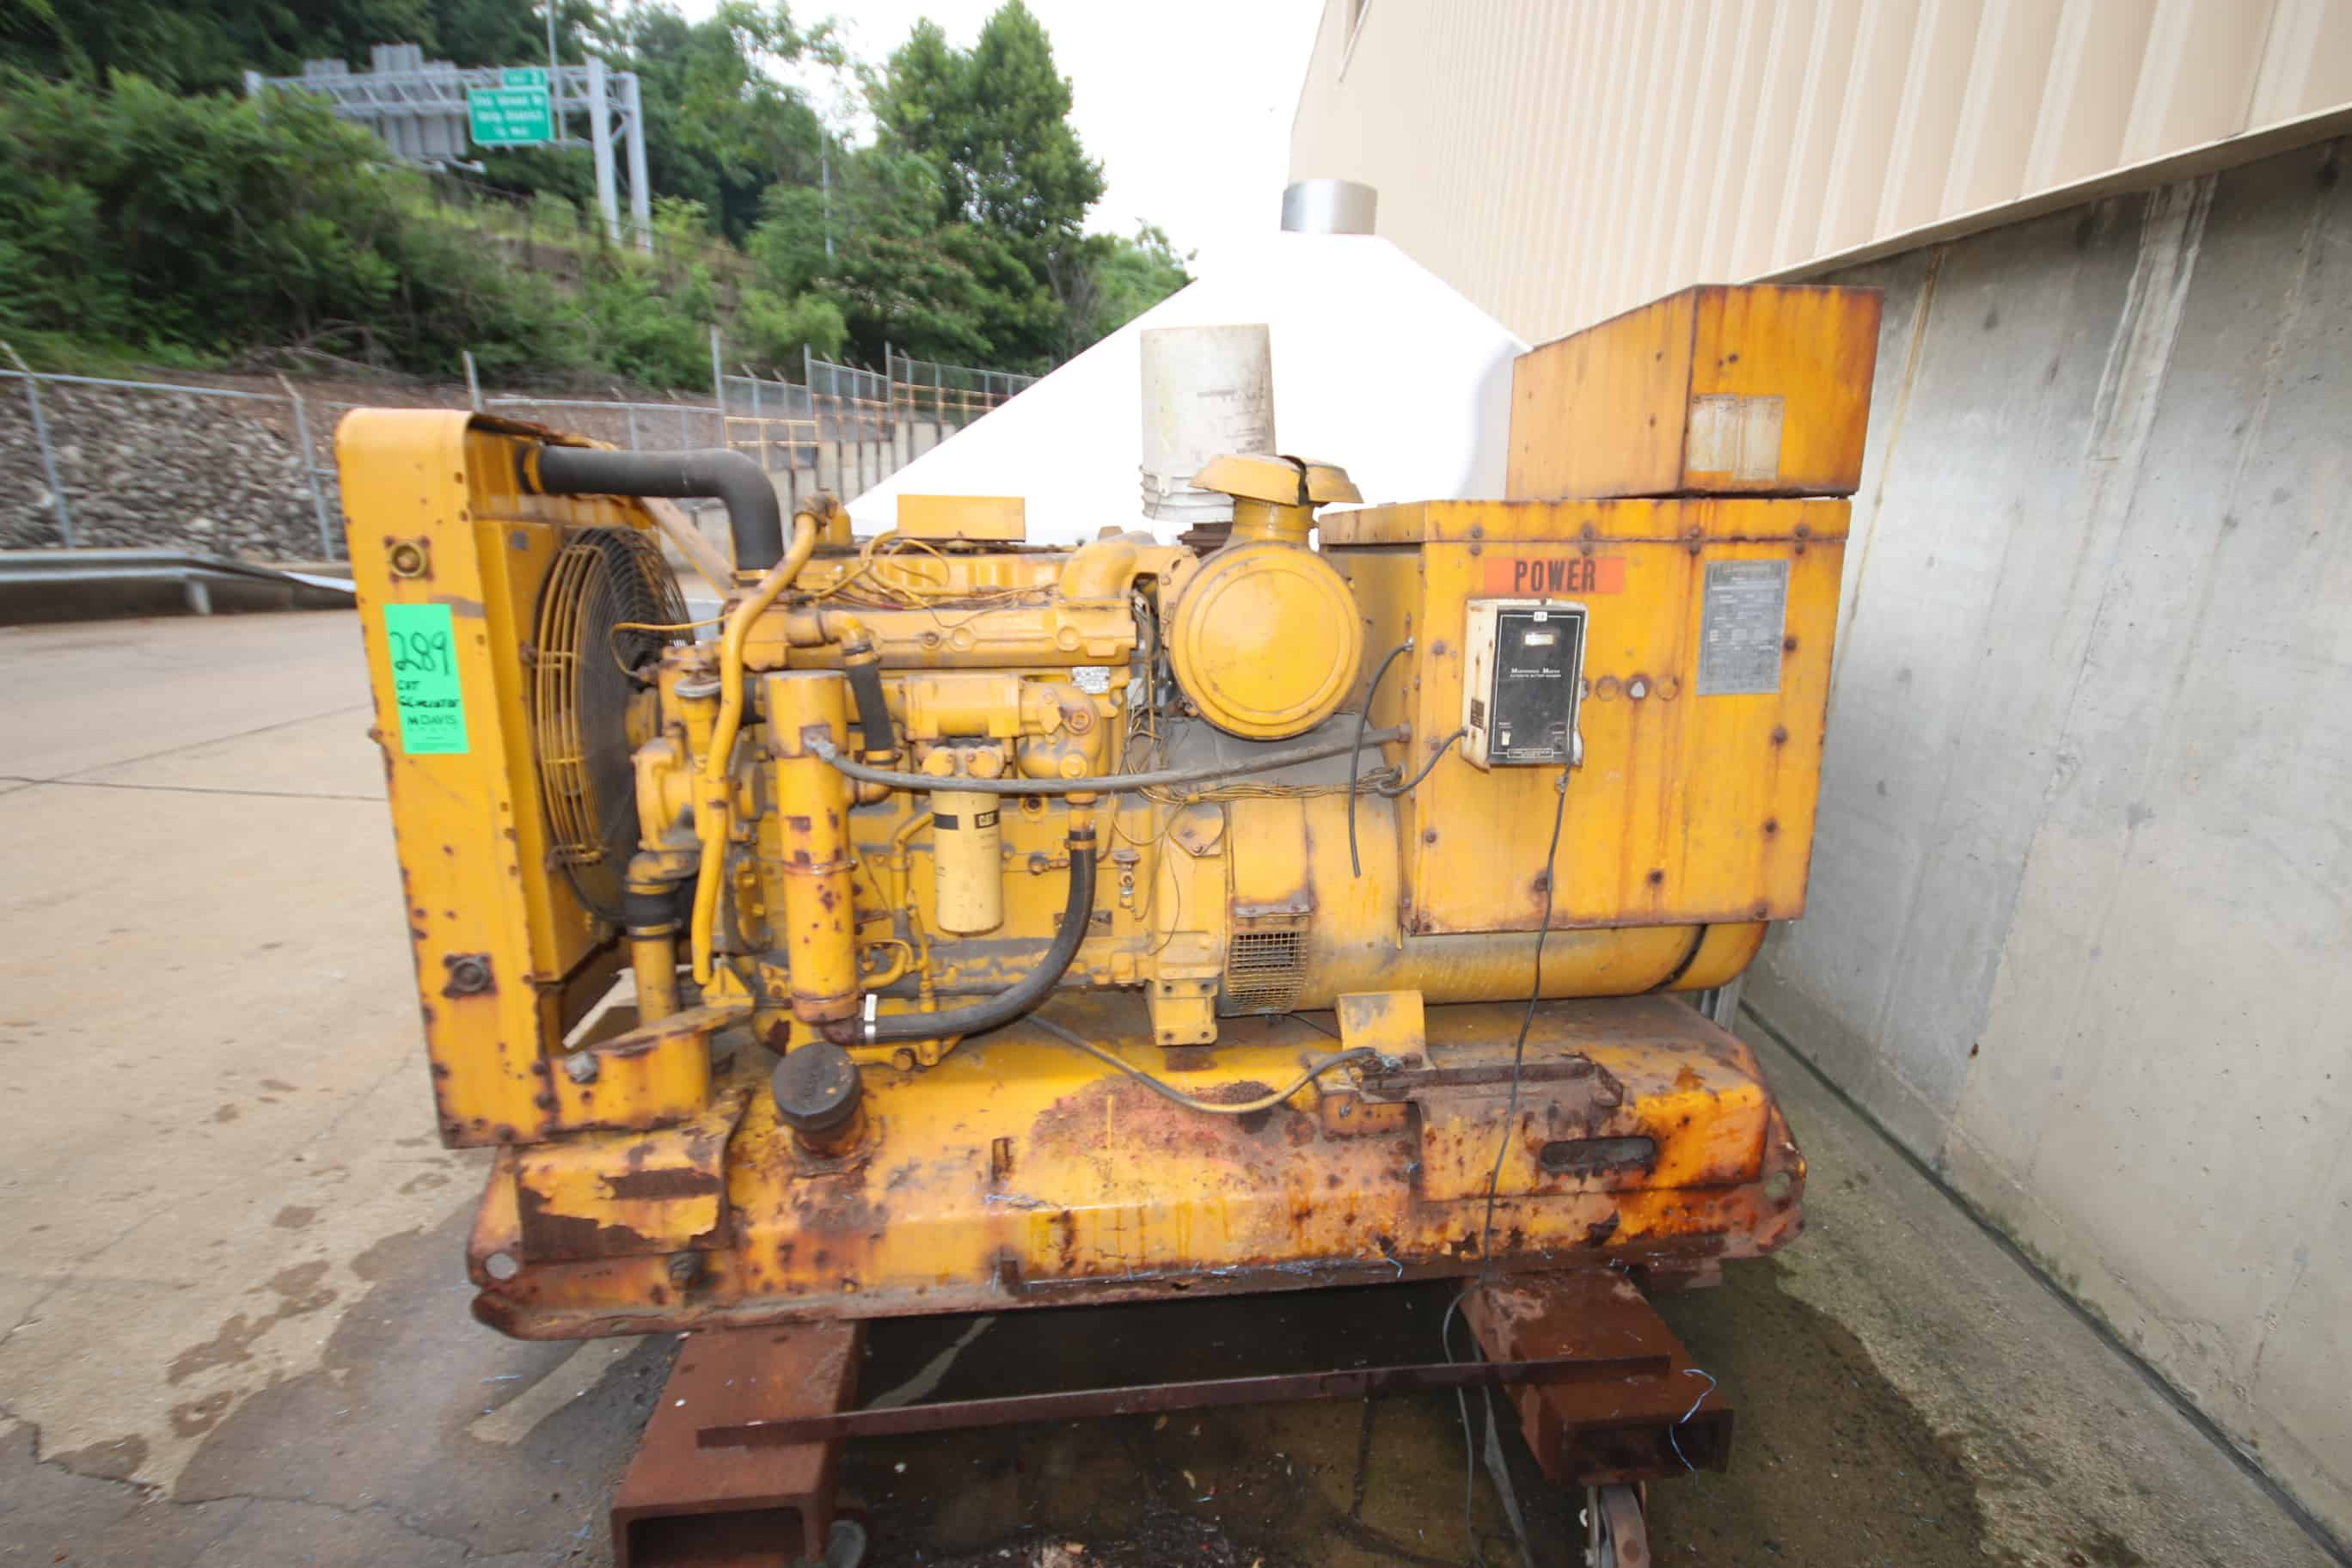 Caterpillar 3304 - 131 KVA Portable Diesel Generator, Model SR4, 1800 RPM, 105 KW, Engine SN 4B 14177, Mounted Steel Skid with Casters, (Former Back up for Vinegar Room)